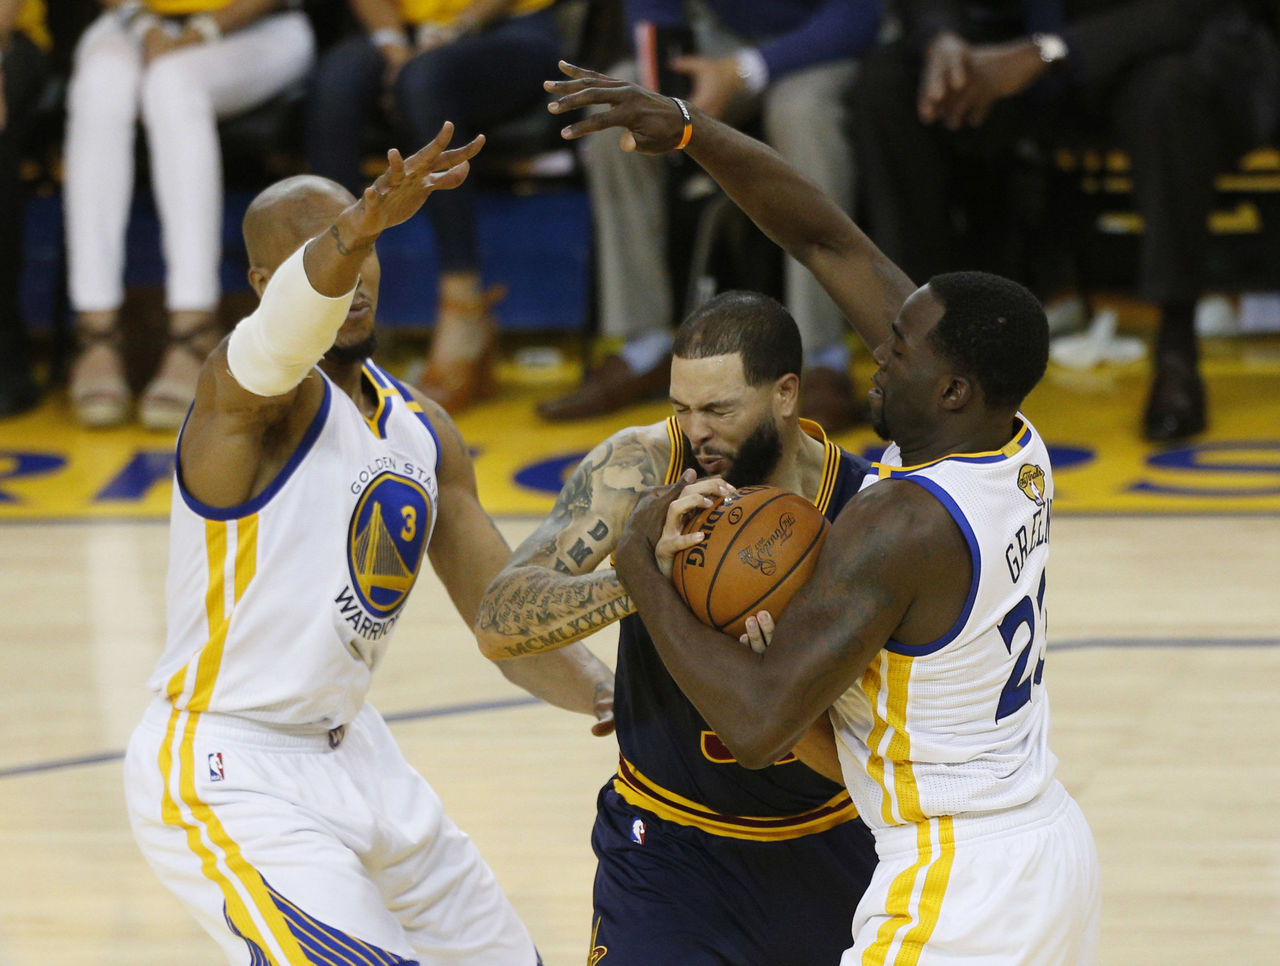 Cropped_2017-06-02t024646z_1098865775_nocid_rtrmadp_3_nba-finals-cleveland-cavaliers-at-golden-state-warriors